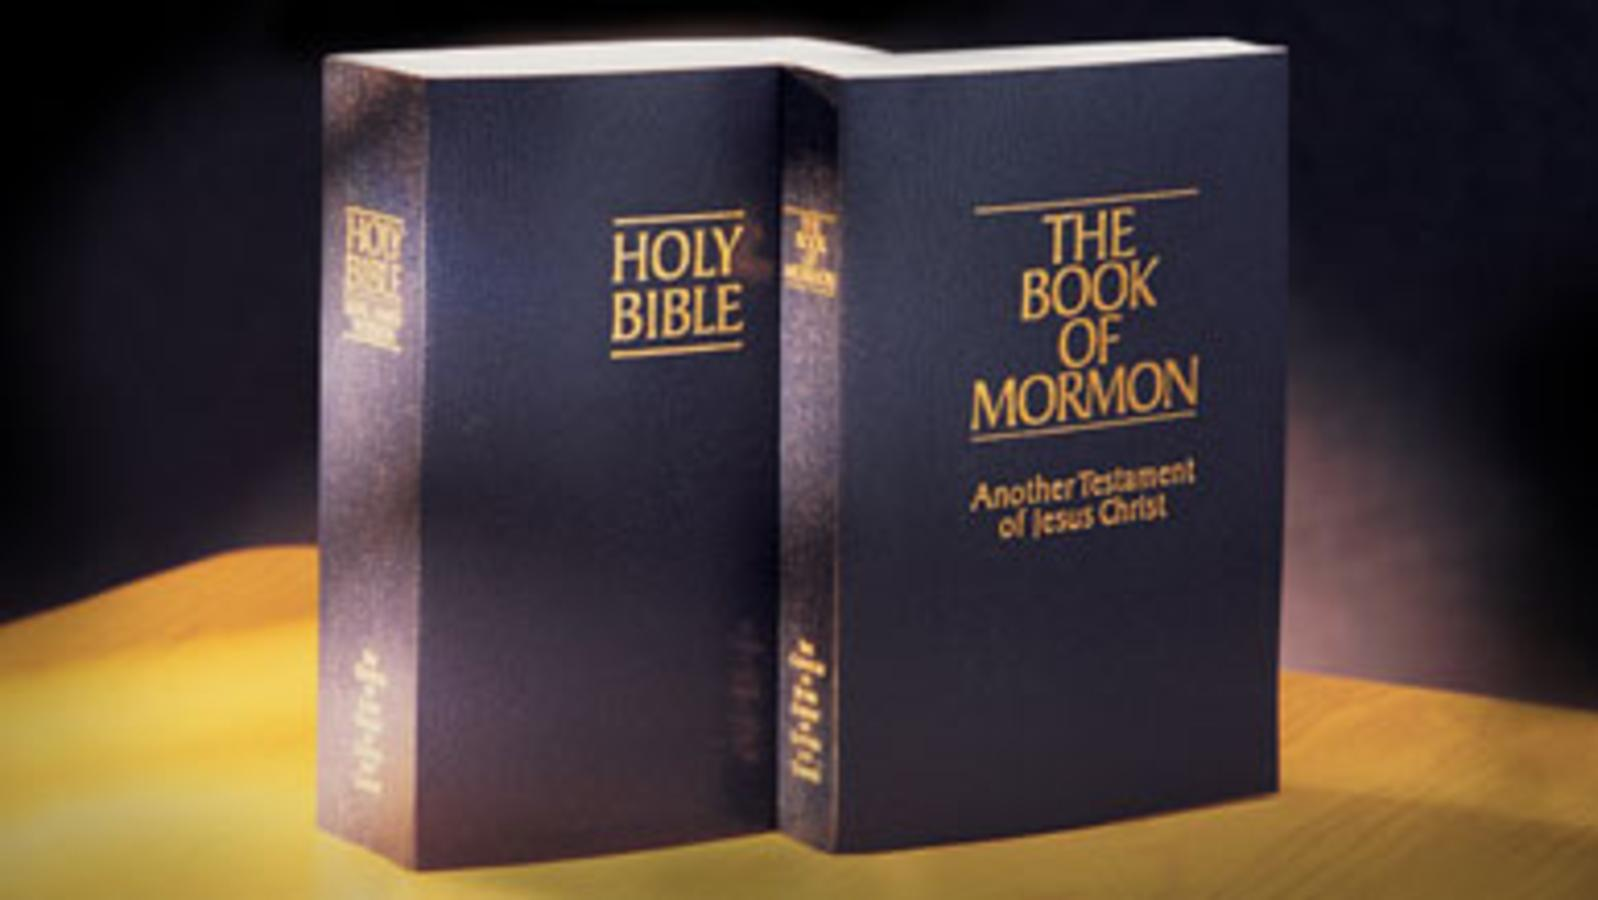 the-kjv-bible-and-the-book-of-mormon-episode-24-2011-10-18.jpg